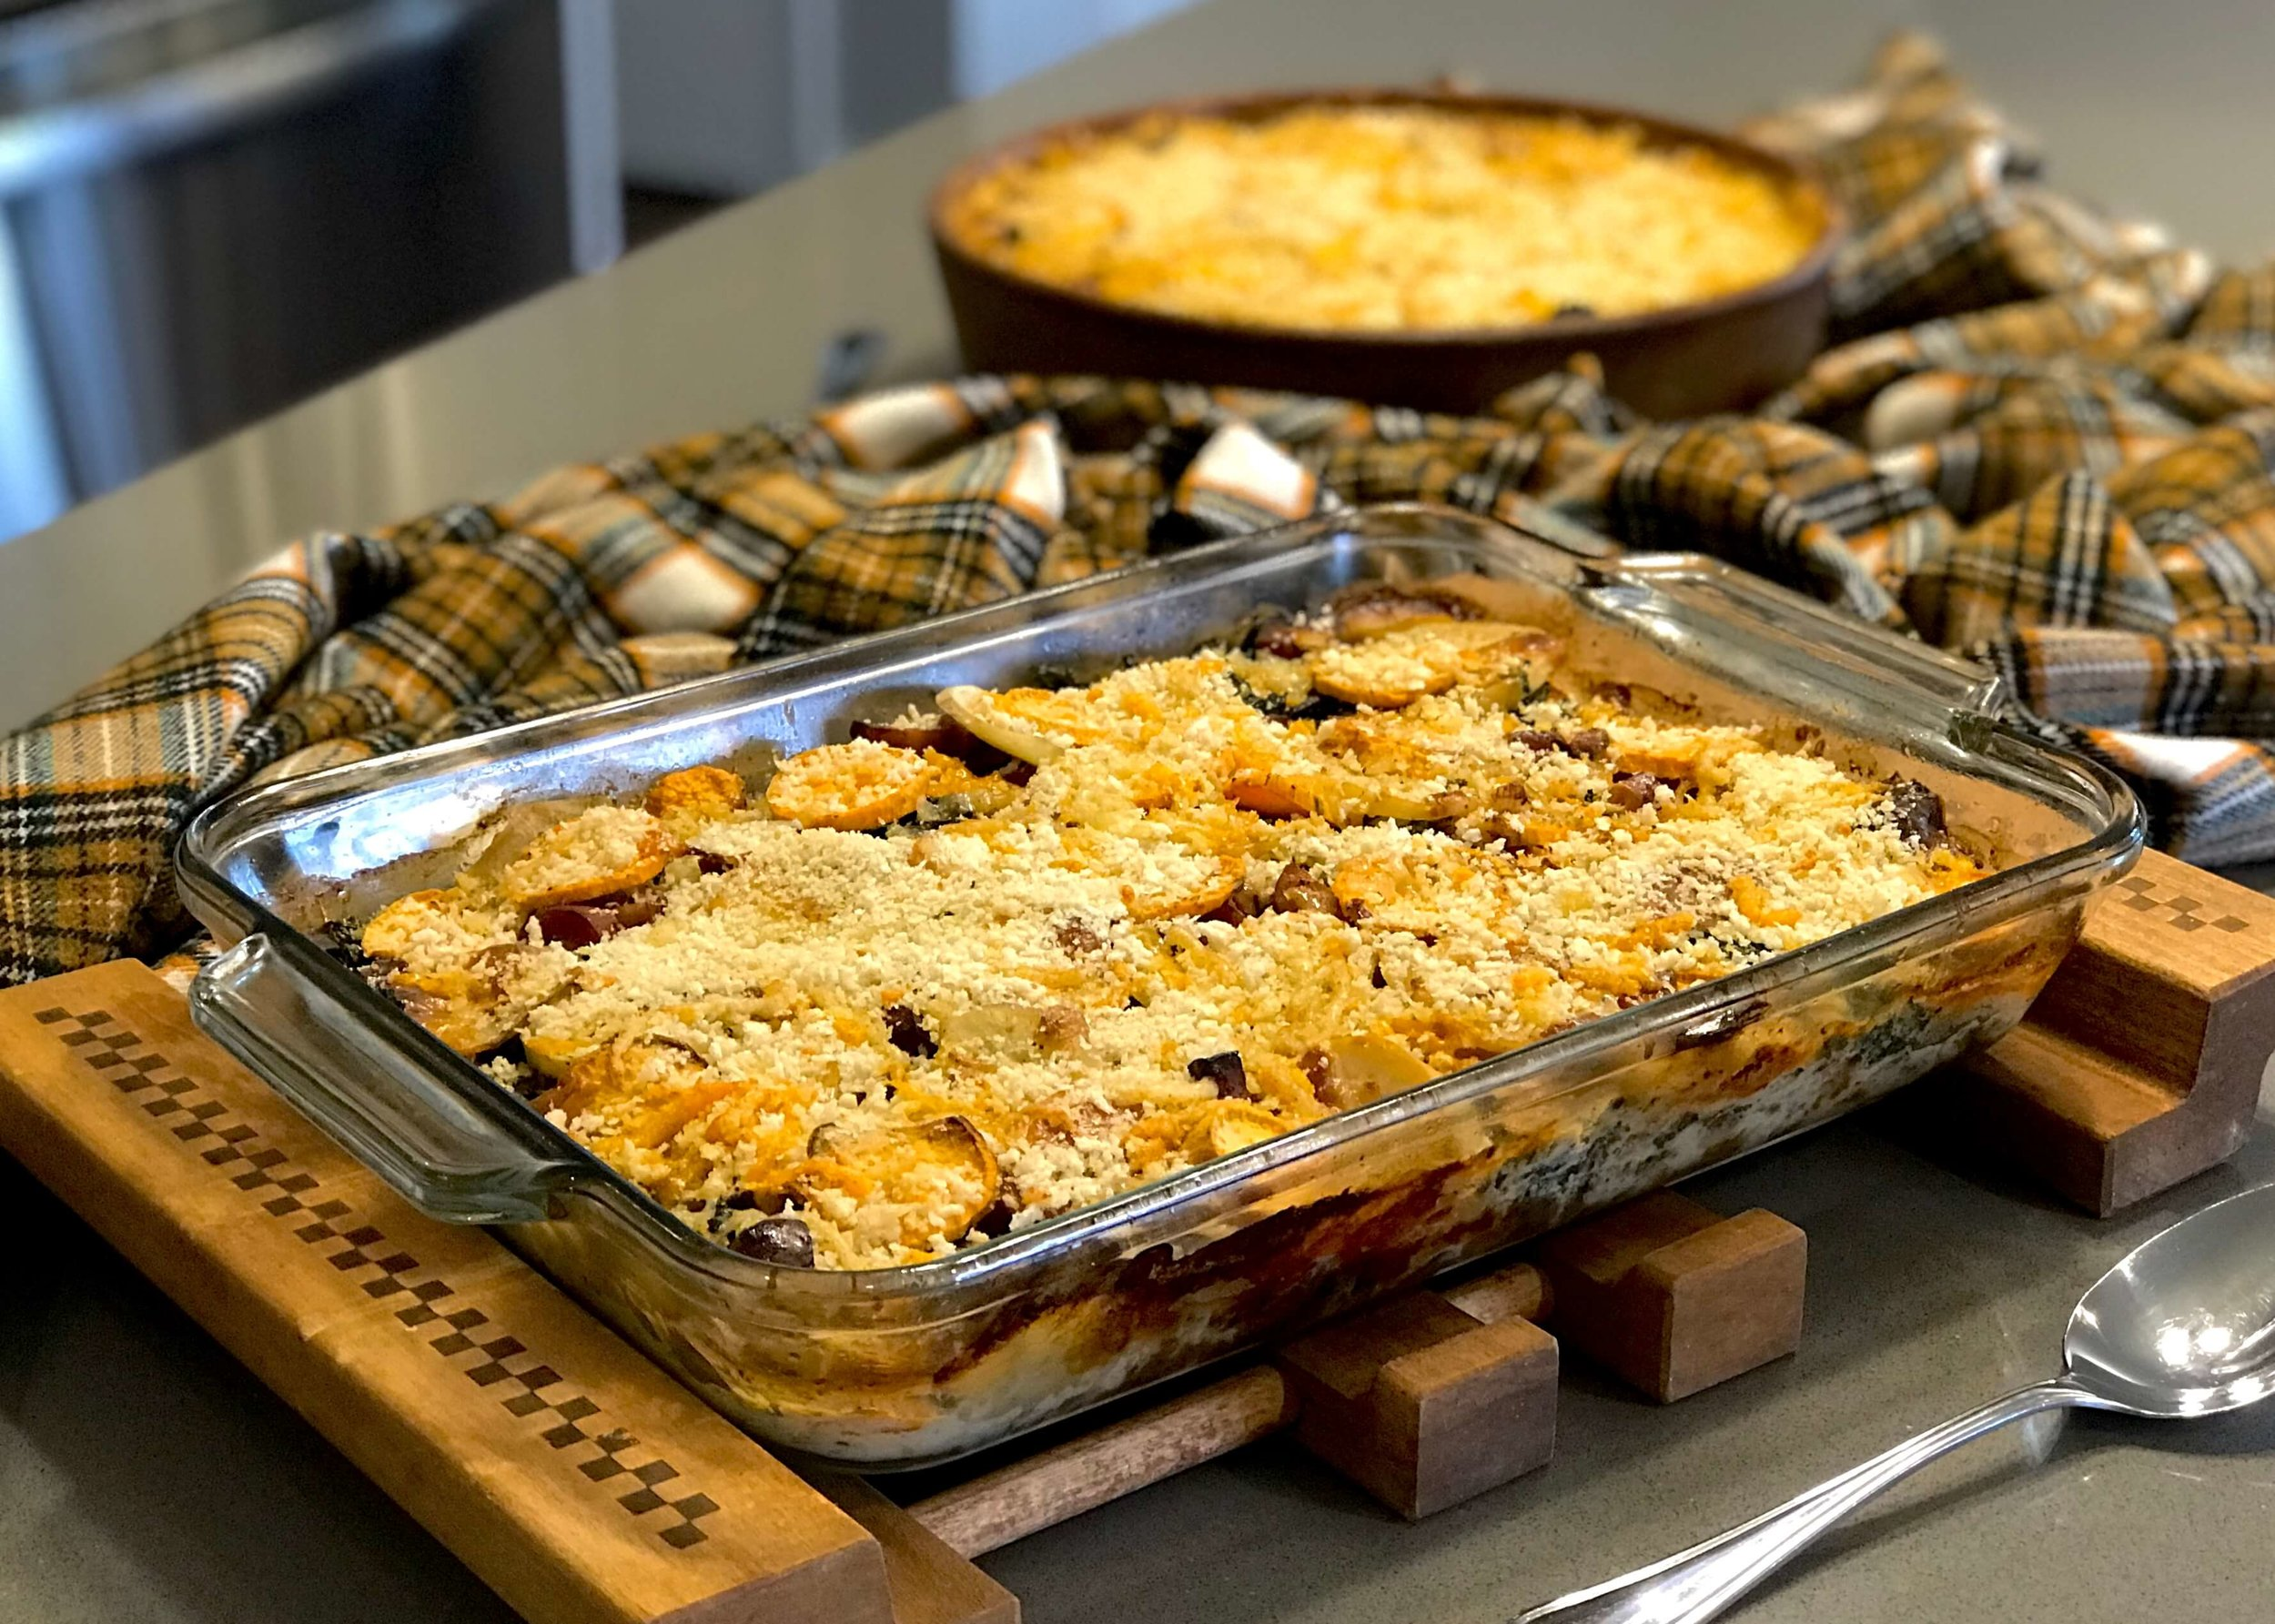 Change a few ingredients to create and Autumn Au Gratin casserole with kale and sausage. Photo credit: Anita McVey/Picnic Life Foodie